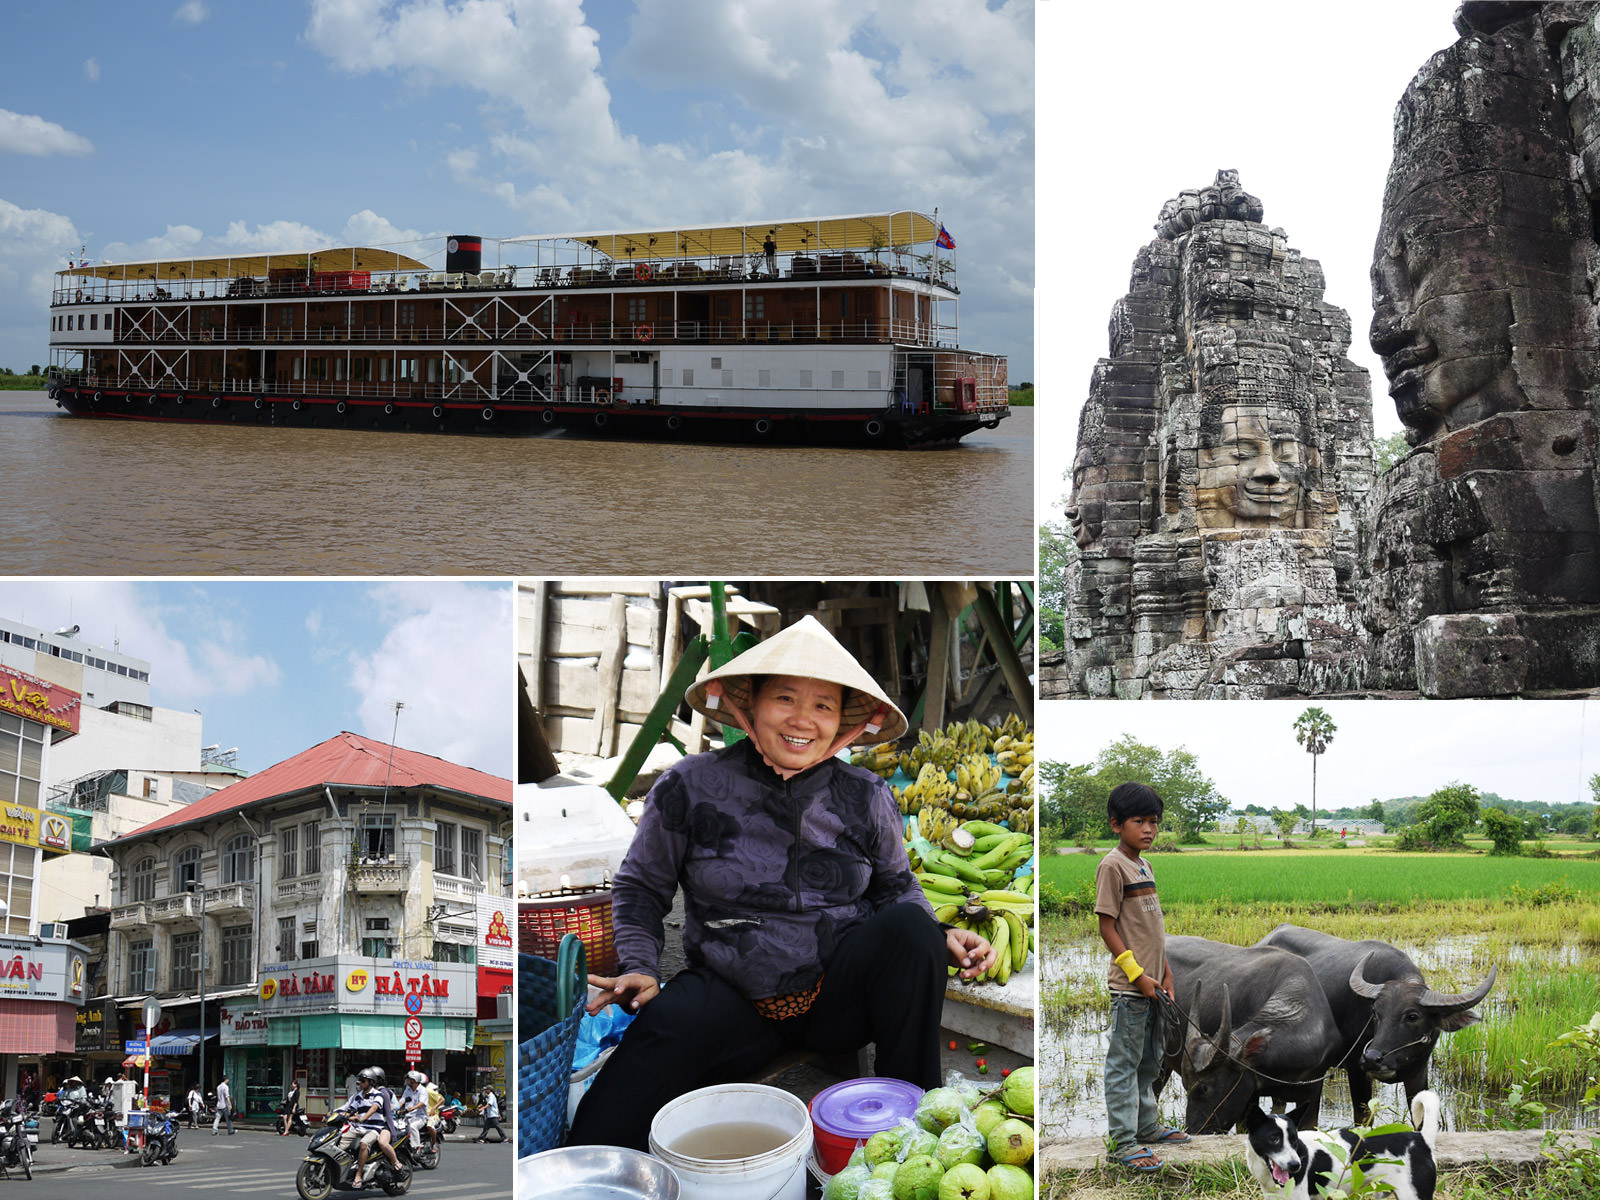 Just a taste of what's to come - clockwise starting top left: our cruise ship, the Mekong Pandaw RV; Bayon Temple at Angkor, Cambodia; boy with oxen at Cheungkok village in Kampong Cham, Cambodia; fruit seller at Sa Dec market, Vietnam; motorcycles galore in downtown Saigon, Vietnam